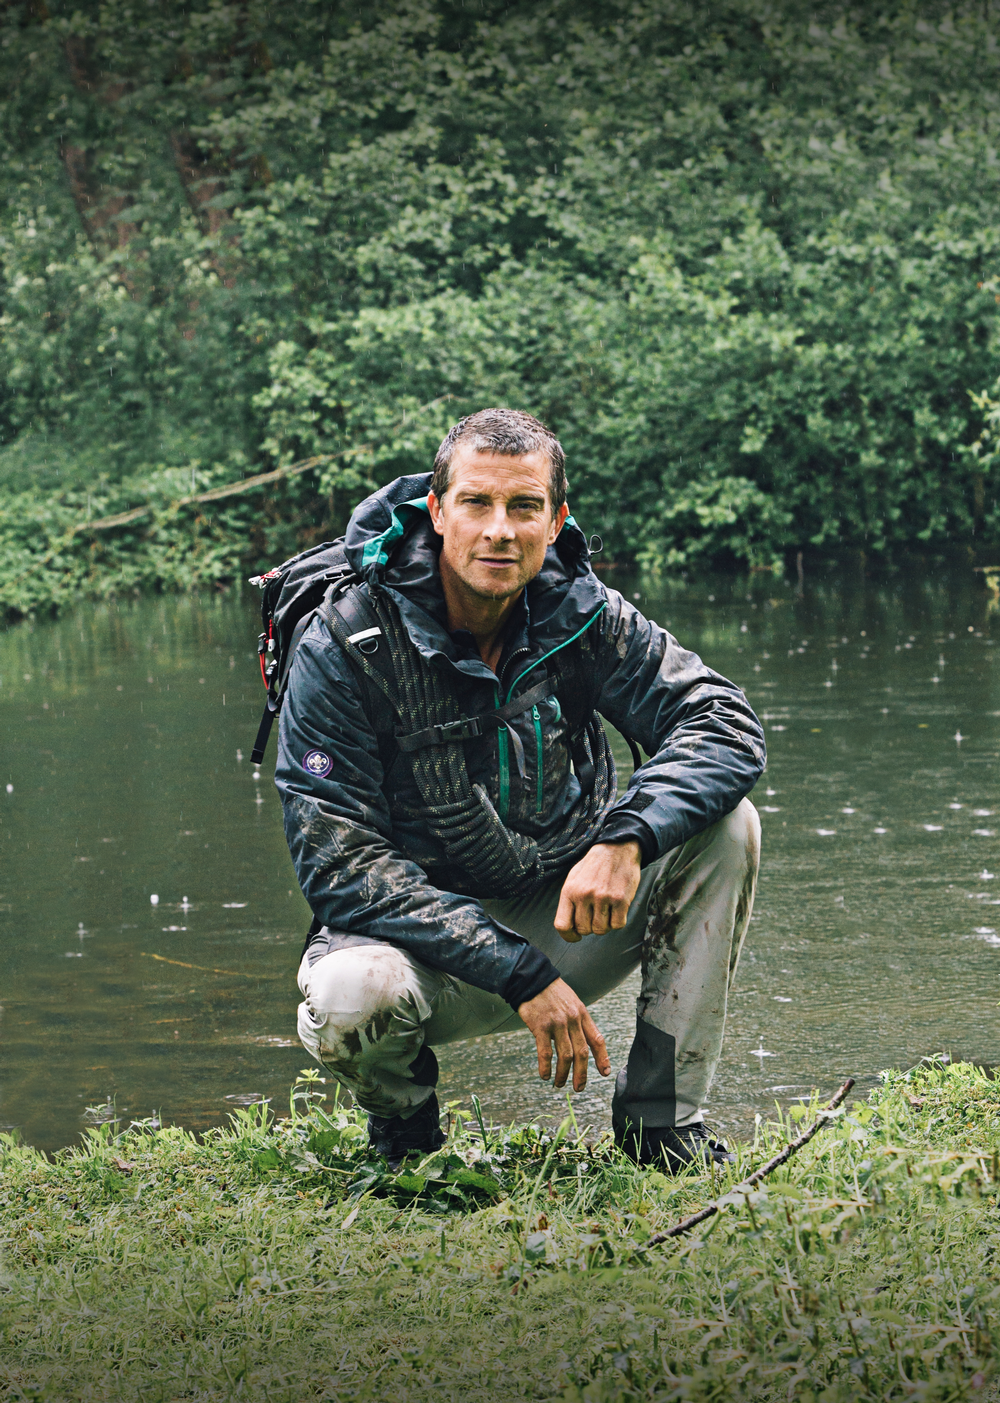 BMF is relaunching, with Bear Grylls as co-owner and Dave Stalker as CEO